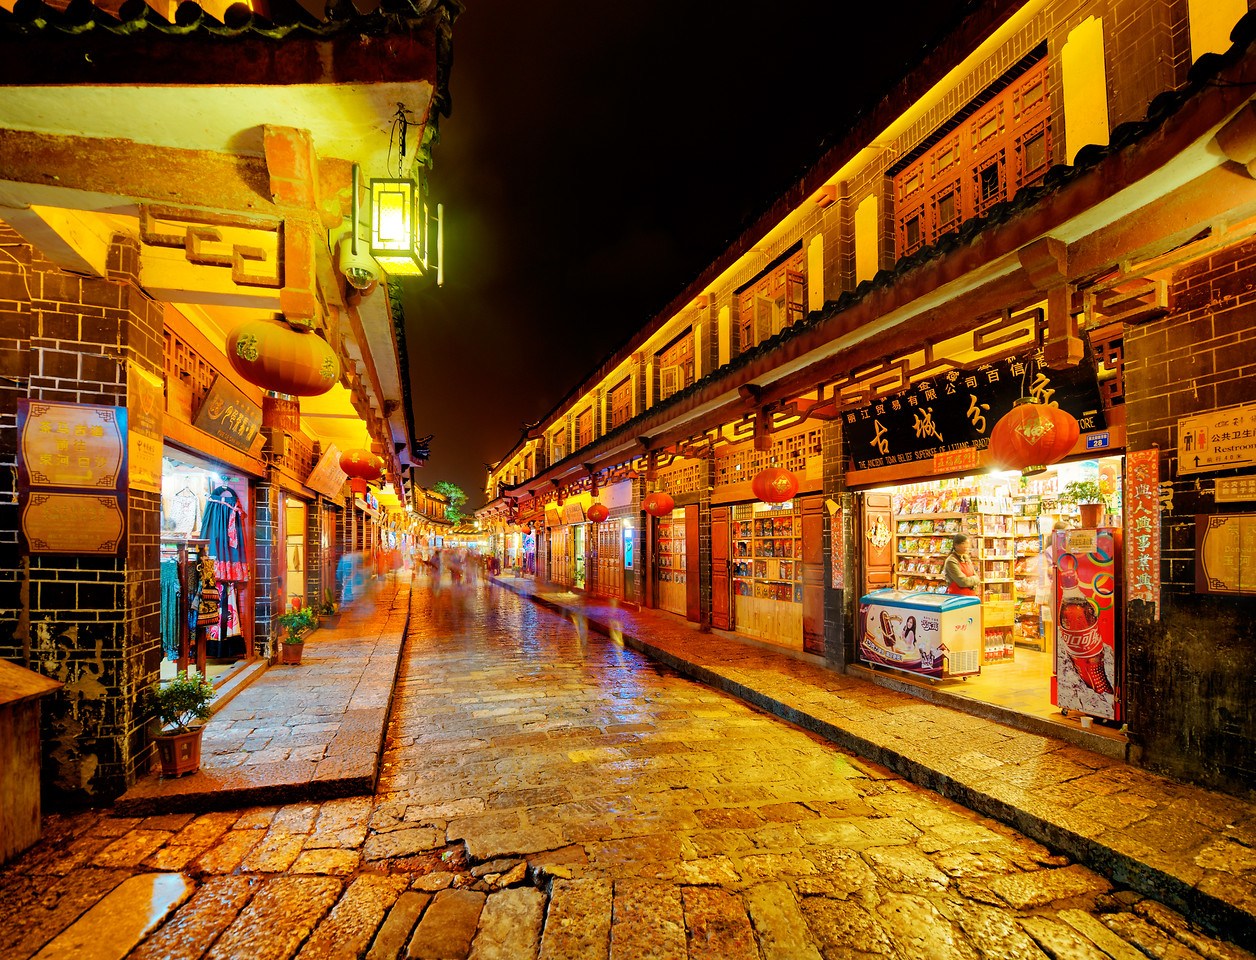 The Charming Streets of Lijiang